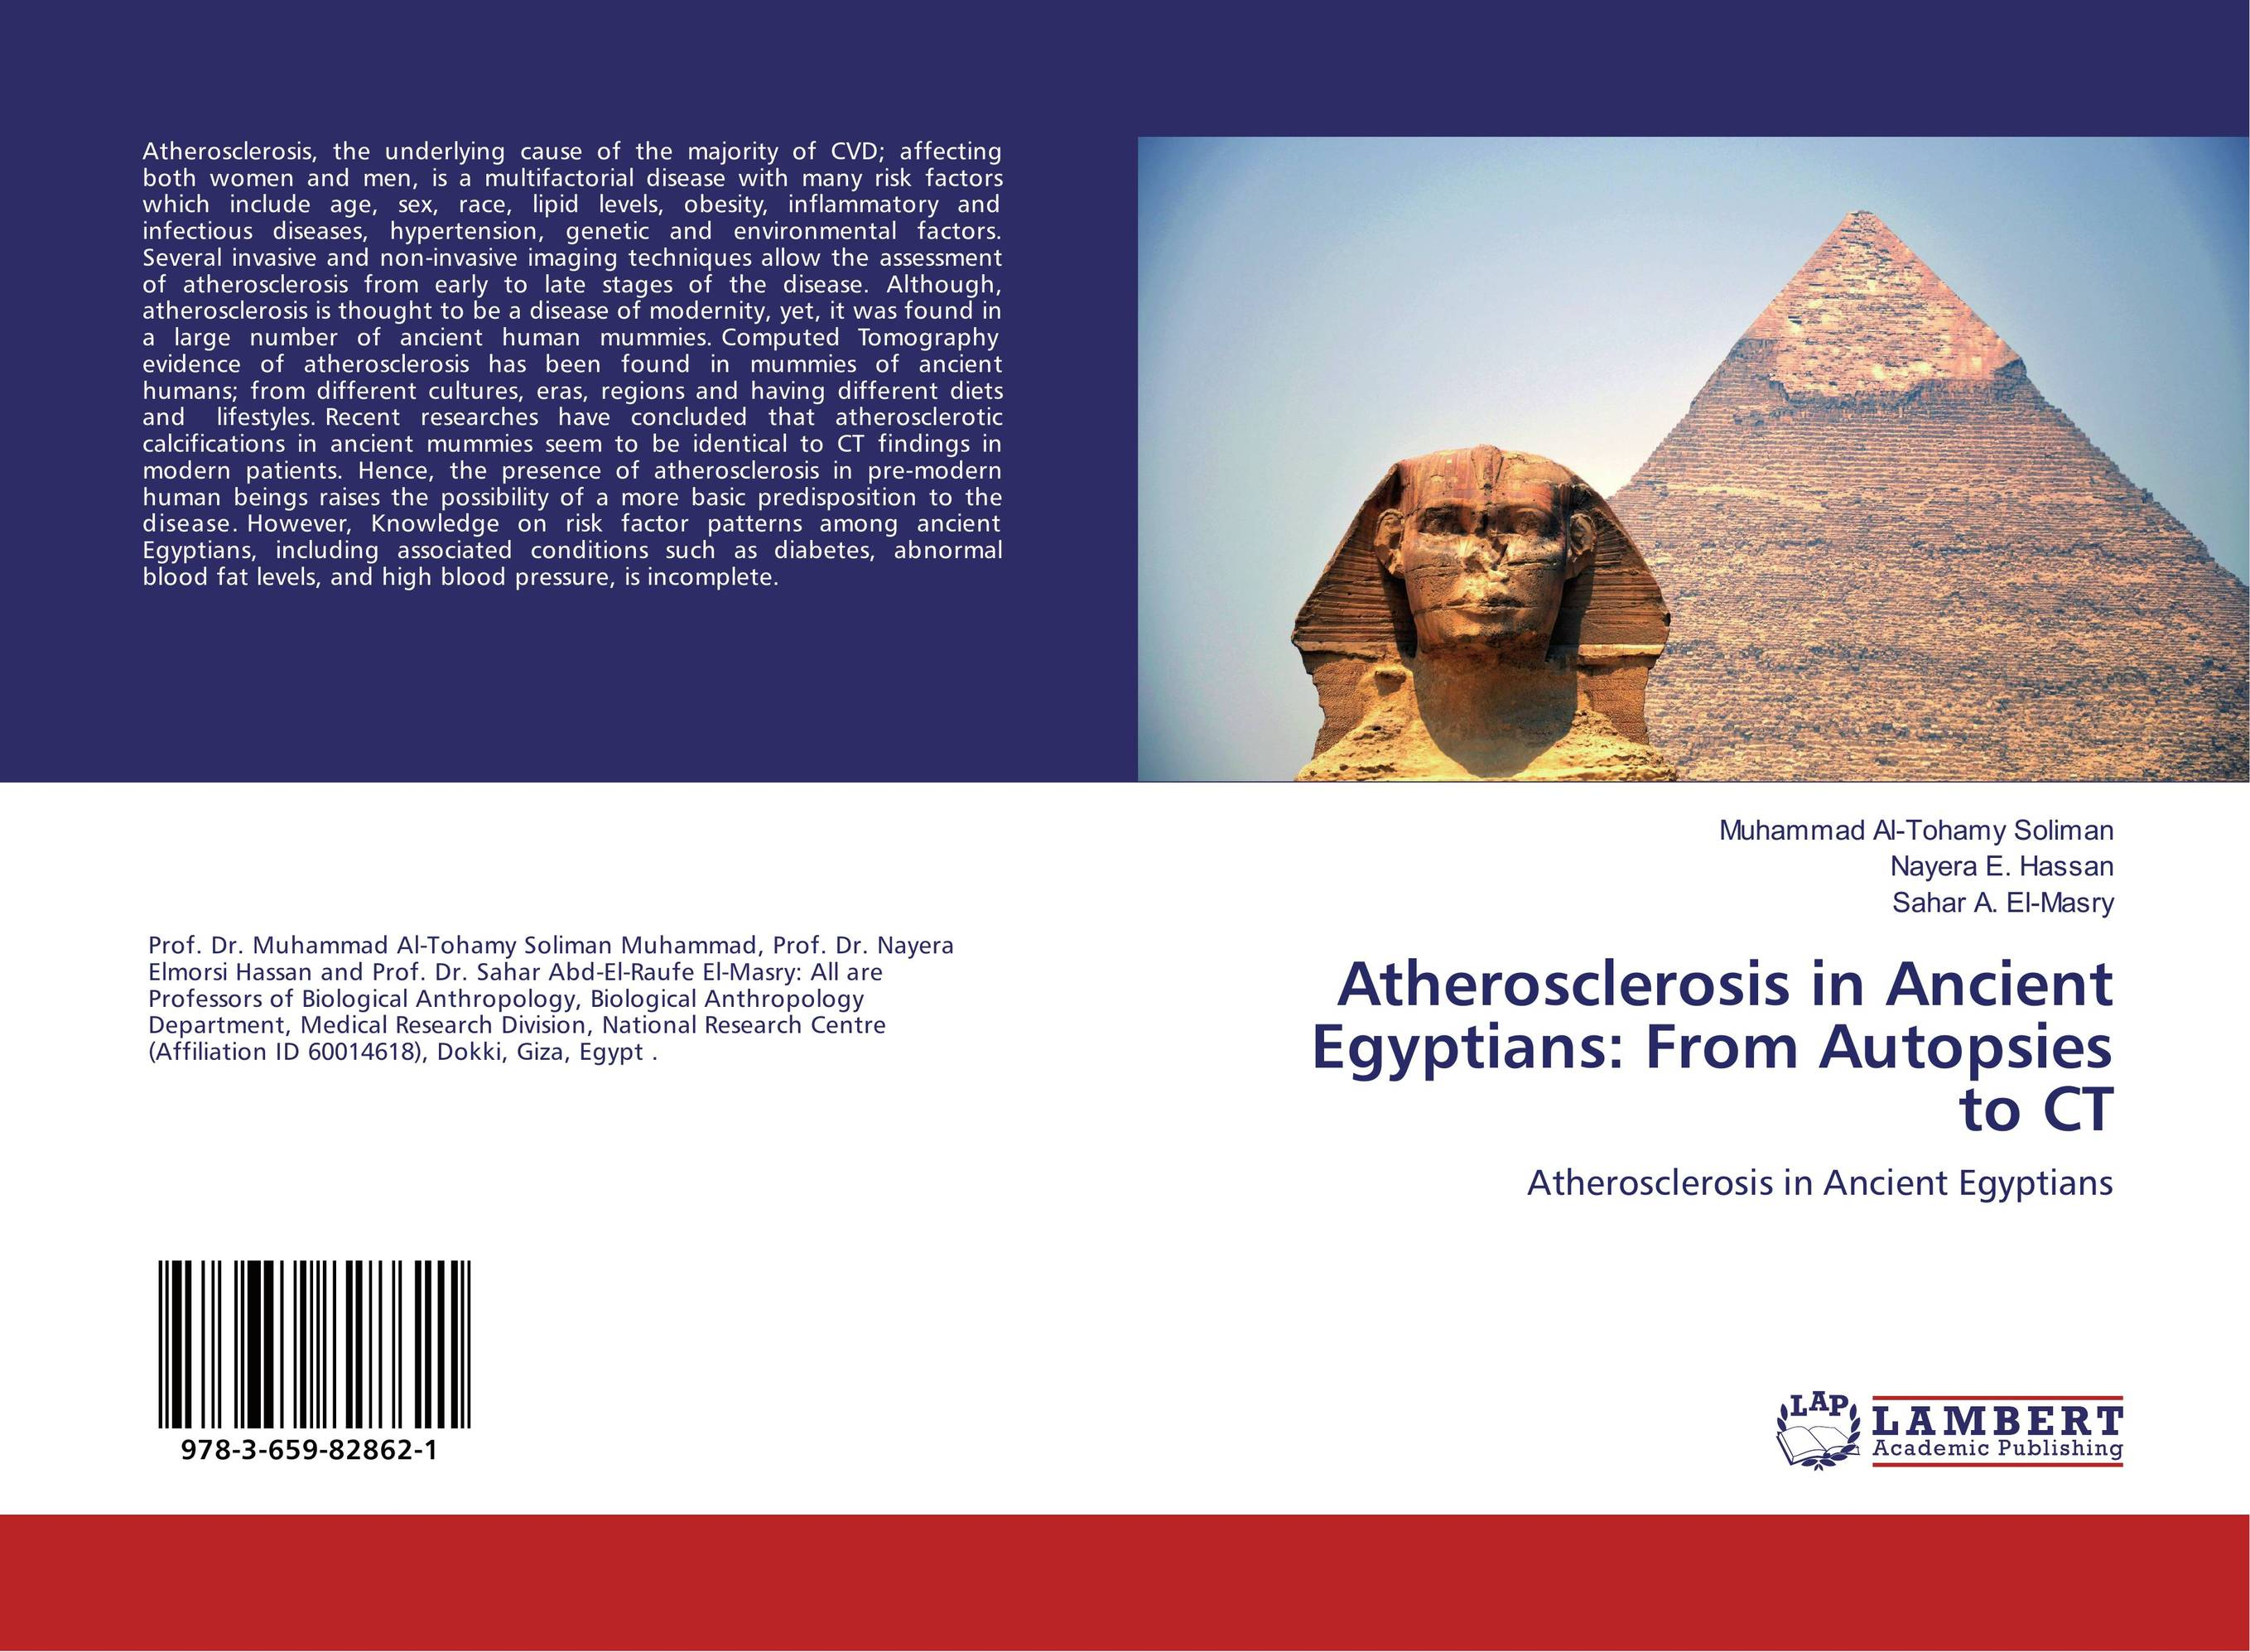 Atherosclerosis in Ancient Egyptians: From Autopsies to CT essays ancient and modern